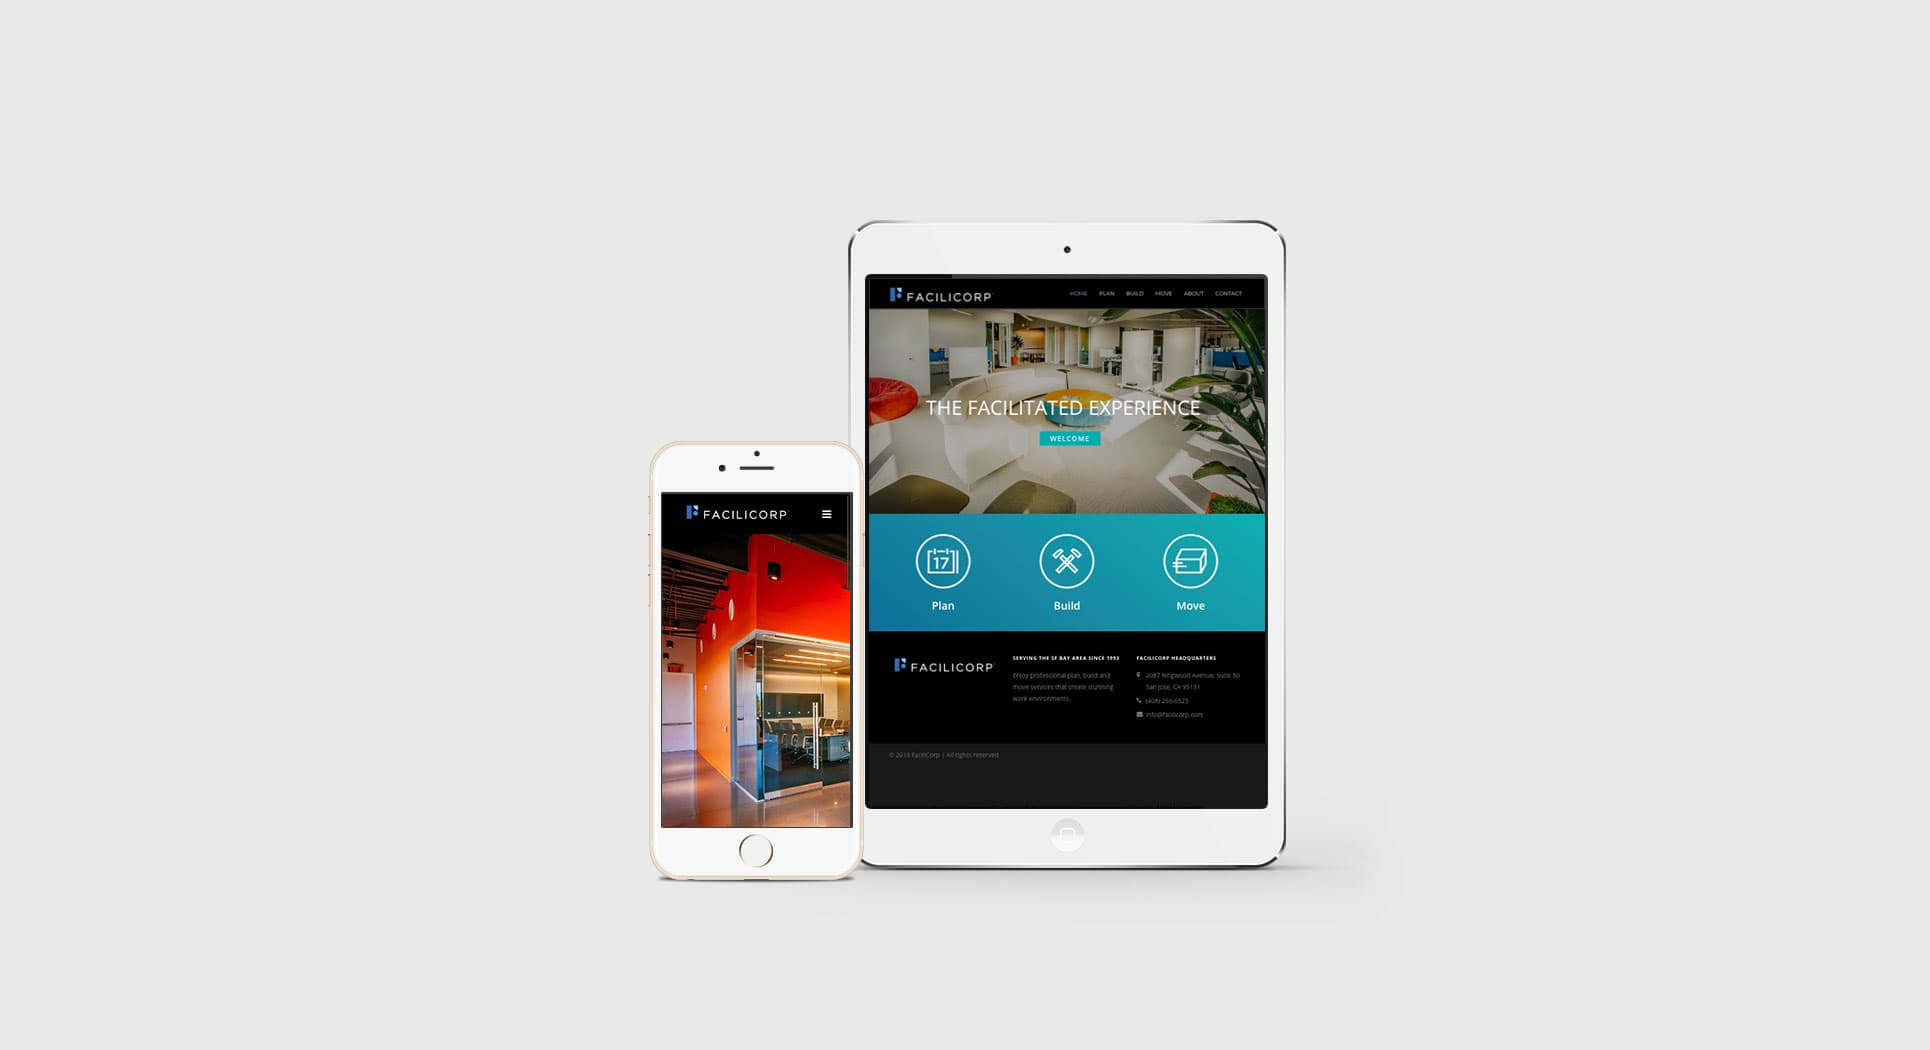 Mobile-friendly San Jose website design shown on tablet and smartphone